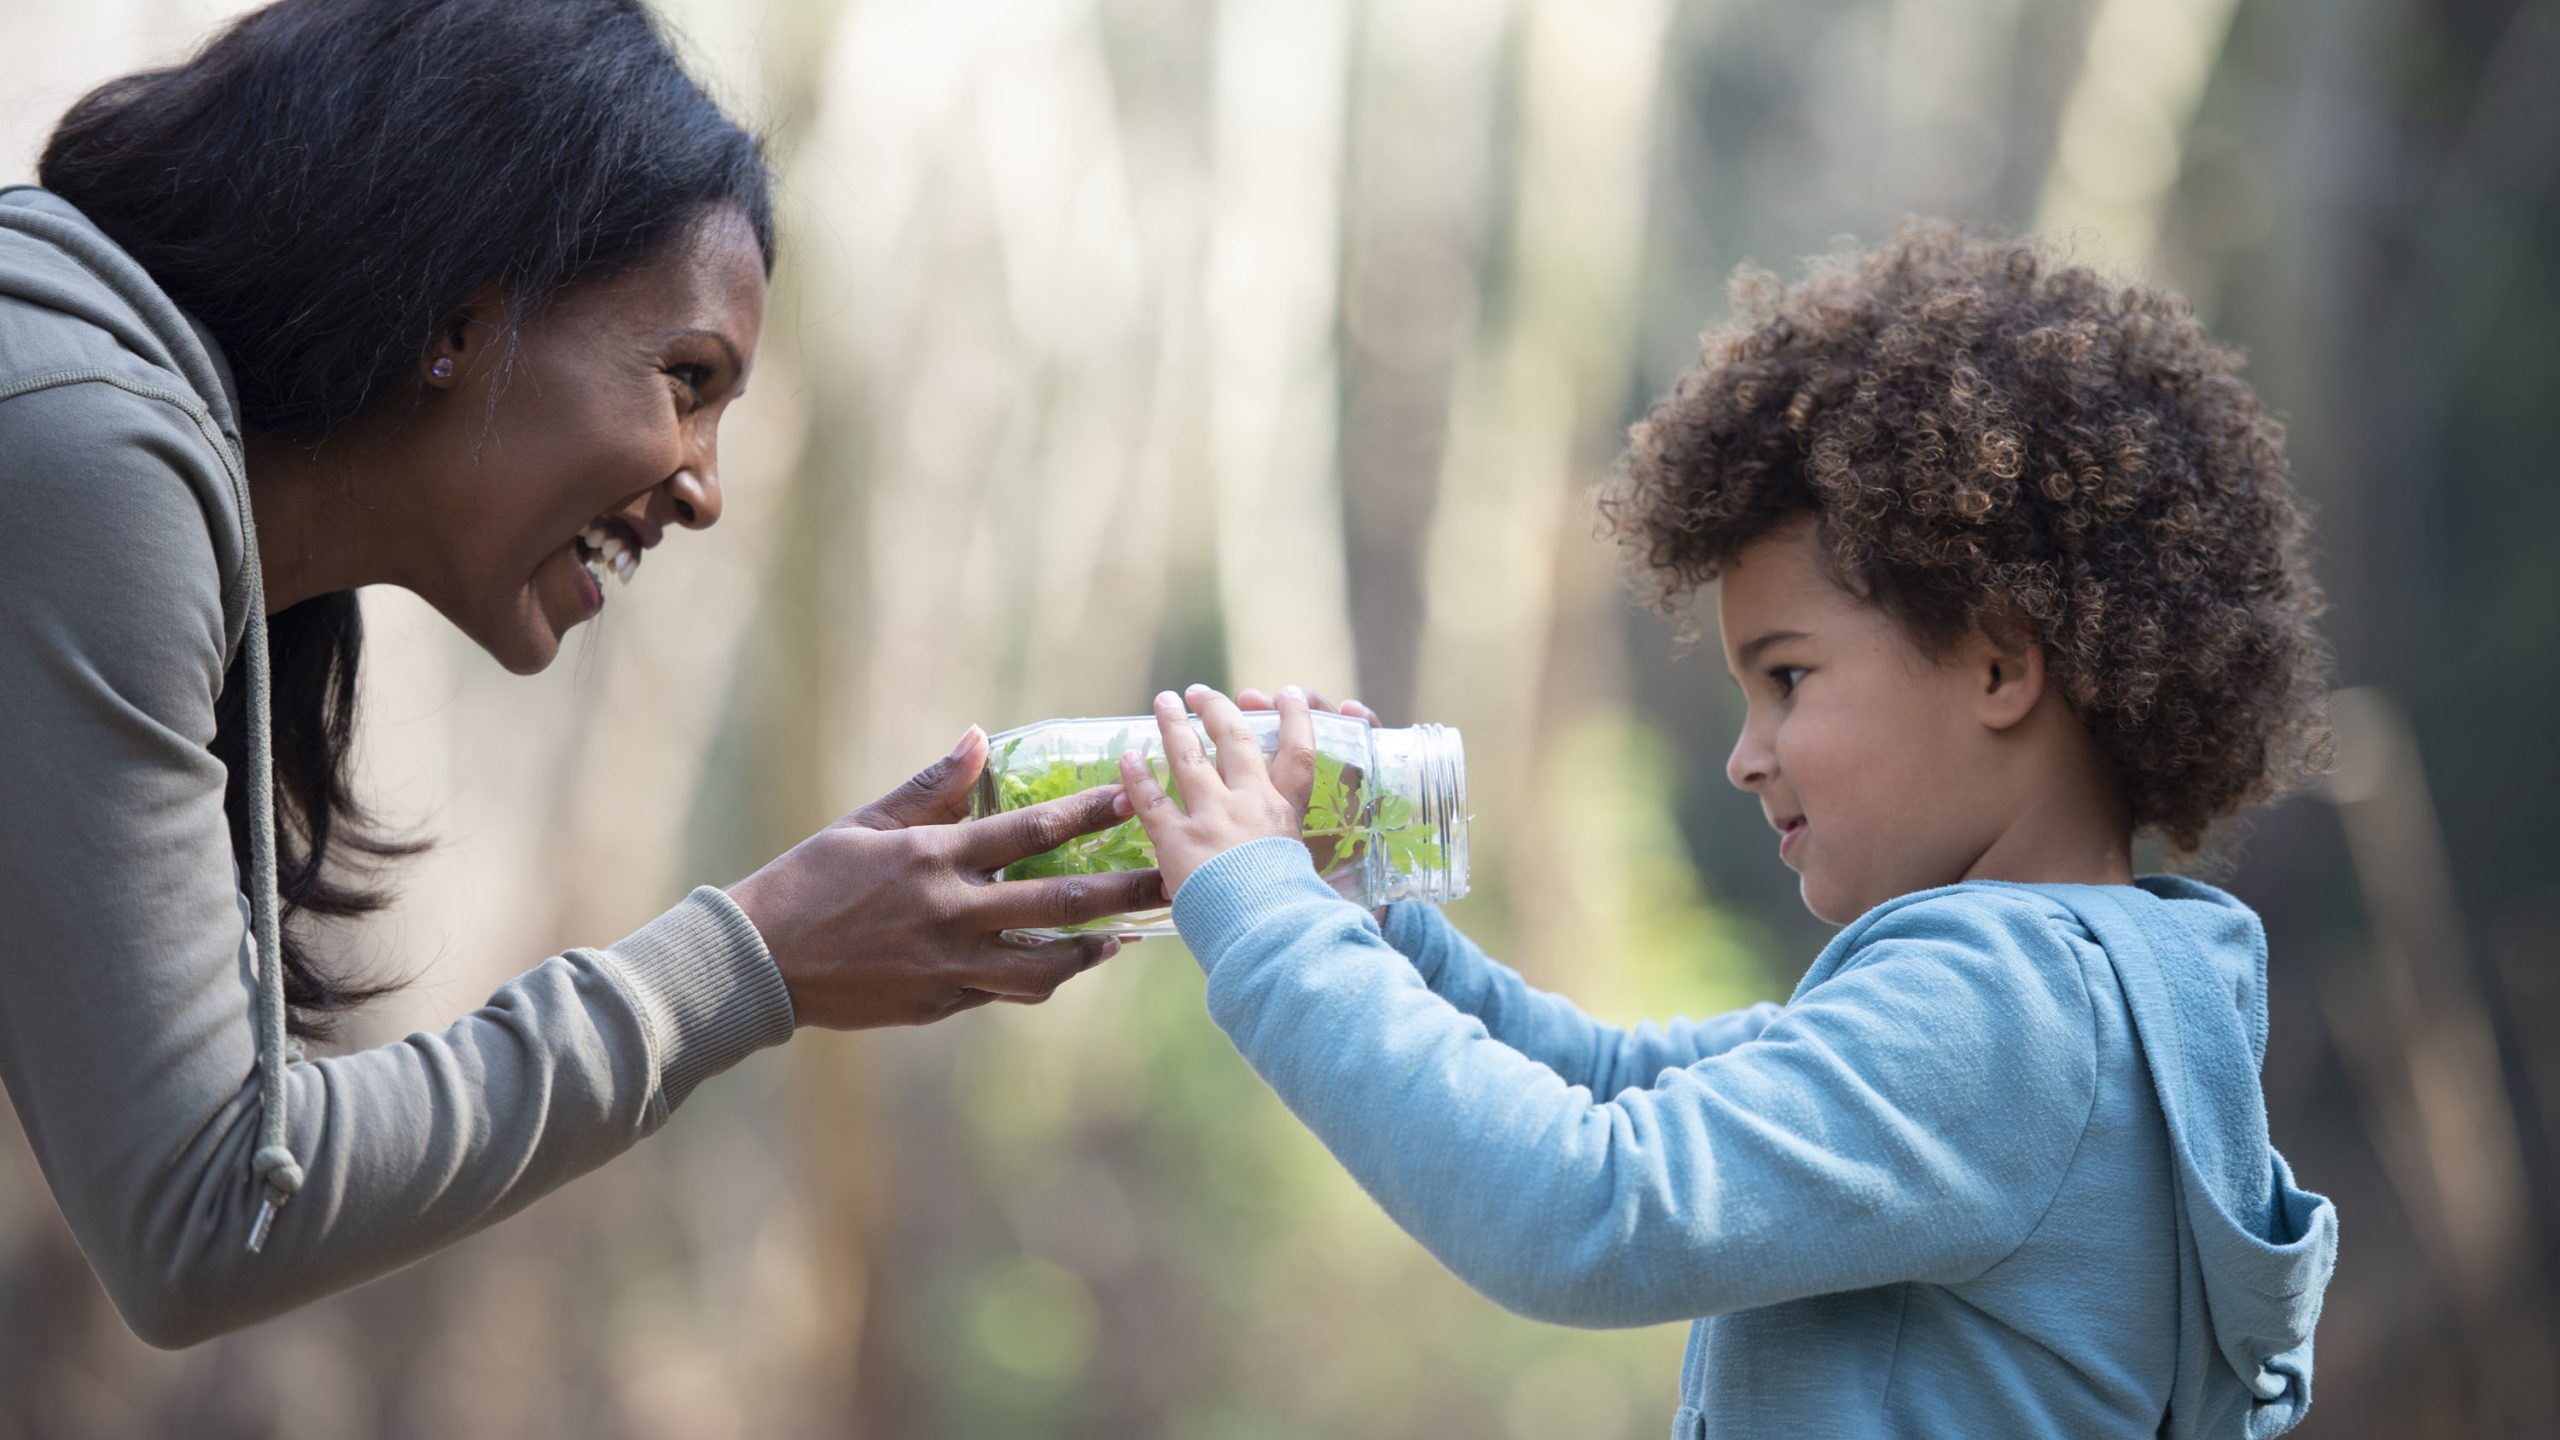 Young mother showing her 5 years old girl what inside of the jar. Mother and daughter studying nature together, holding the jar with plants inside. Teacher showing her little student jar with bugs and explaining to her about what inside. The girl looks excited.